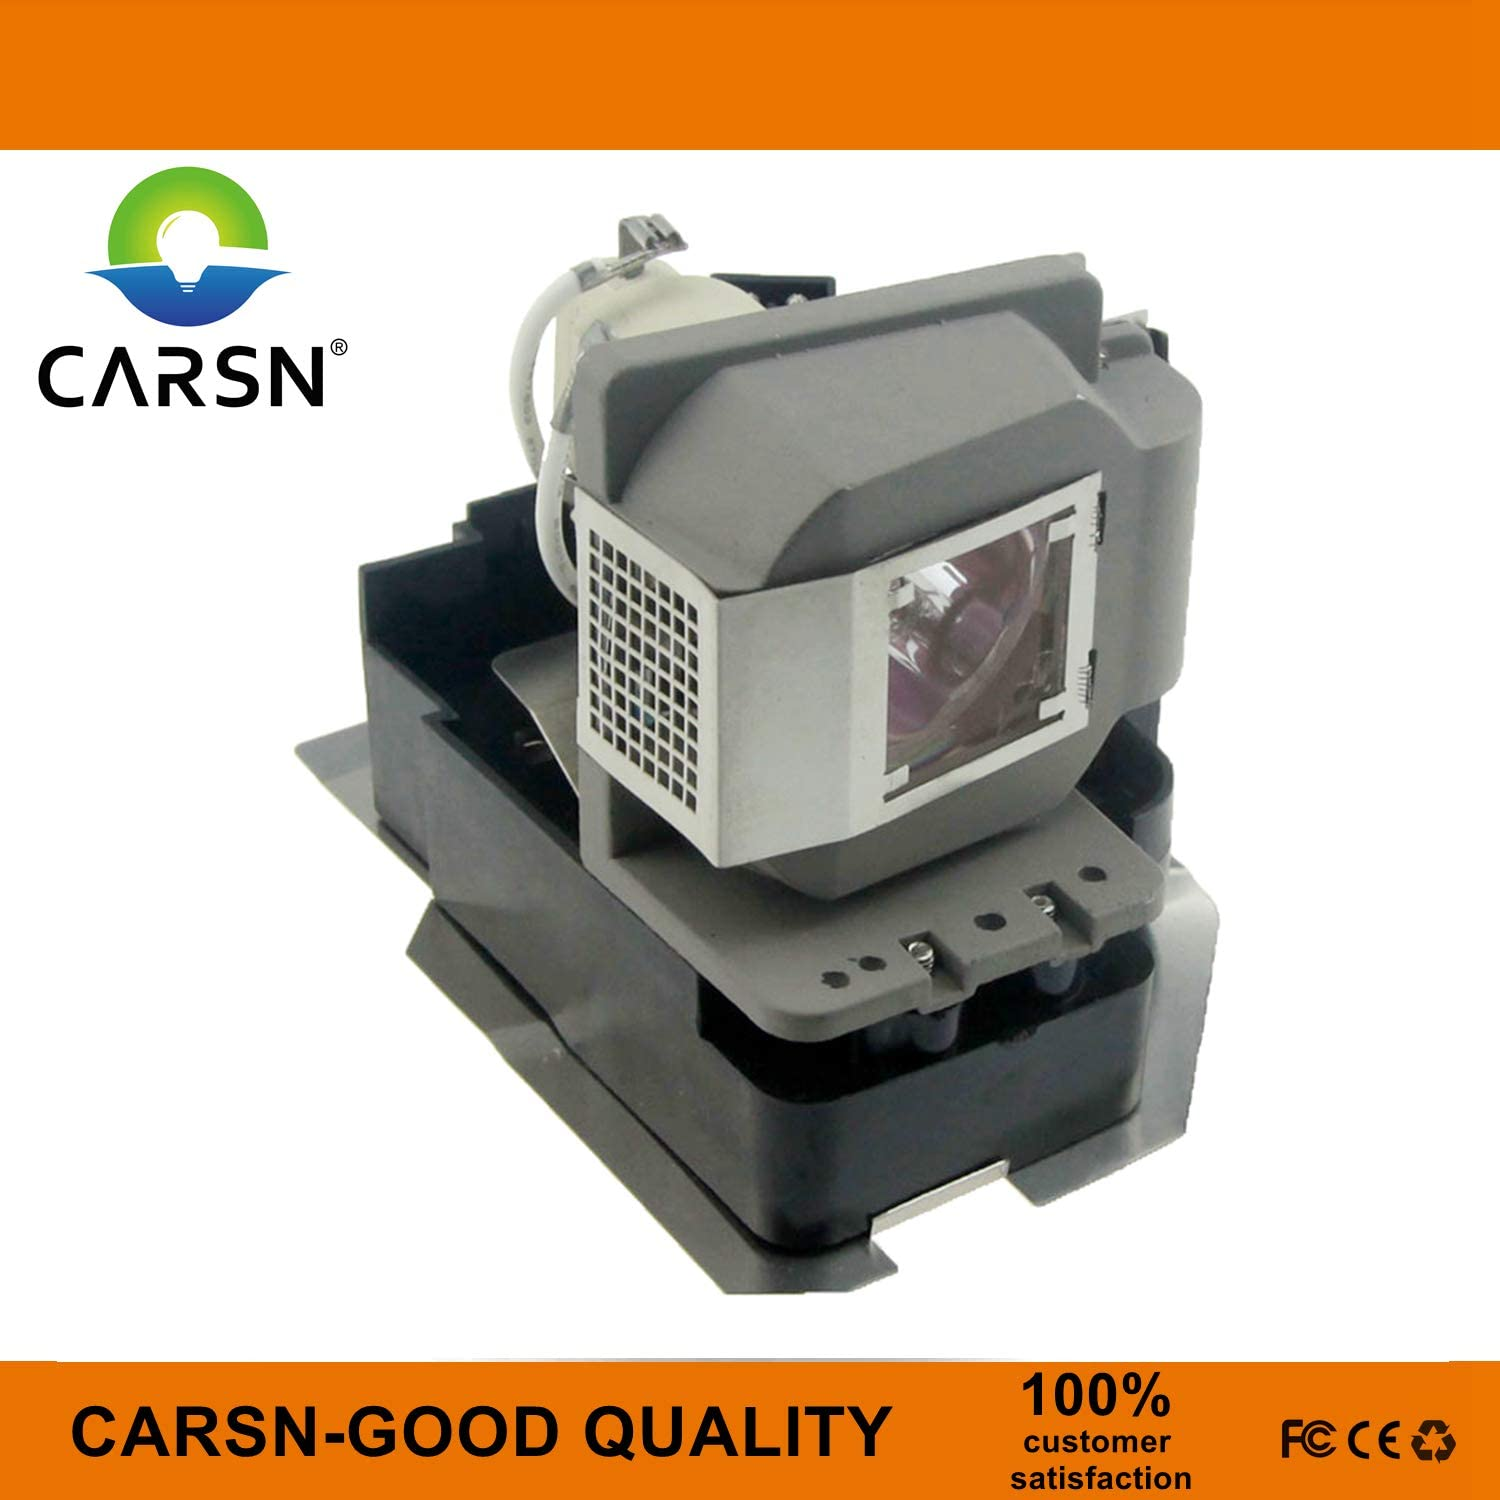 VLT-XD520LP Replacement Projector Lamp for Mitsubishi EX53E EX53U XD500U-ST XD520U XD520 XD530U, Lamp with Housing by CARSN